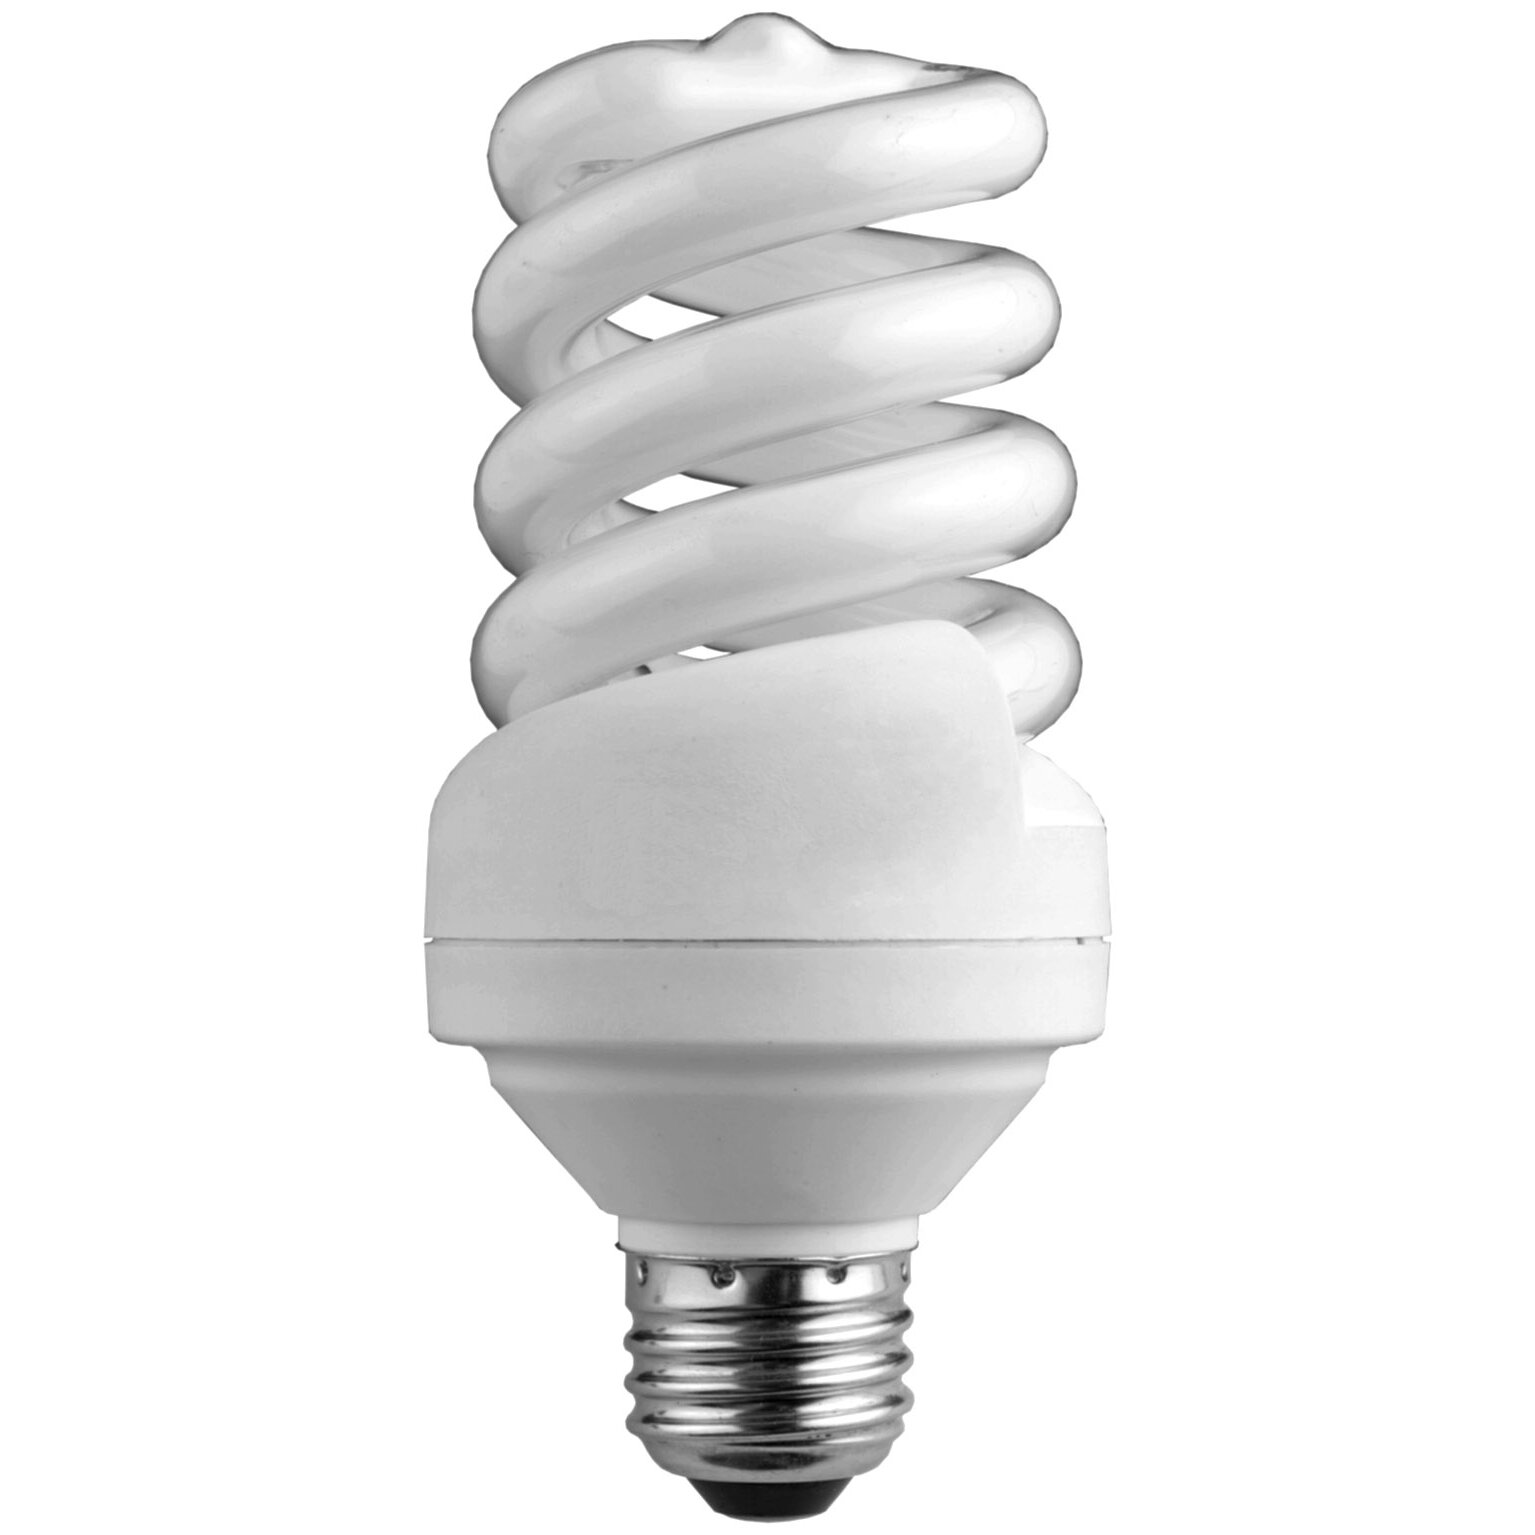 Daylight Company Compact Fluorescent Light Bulb Reviews Wayfair